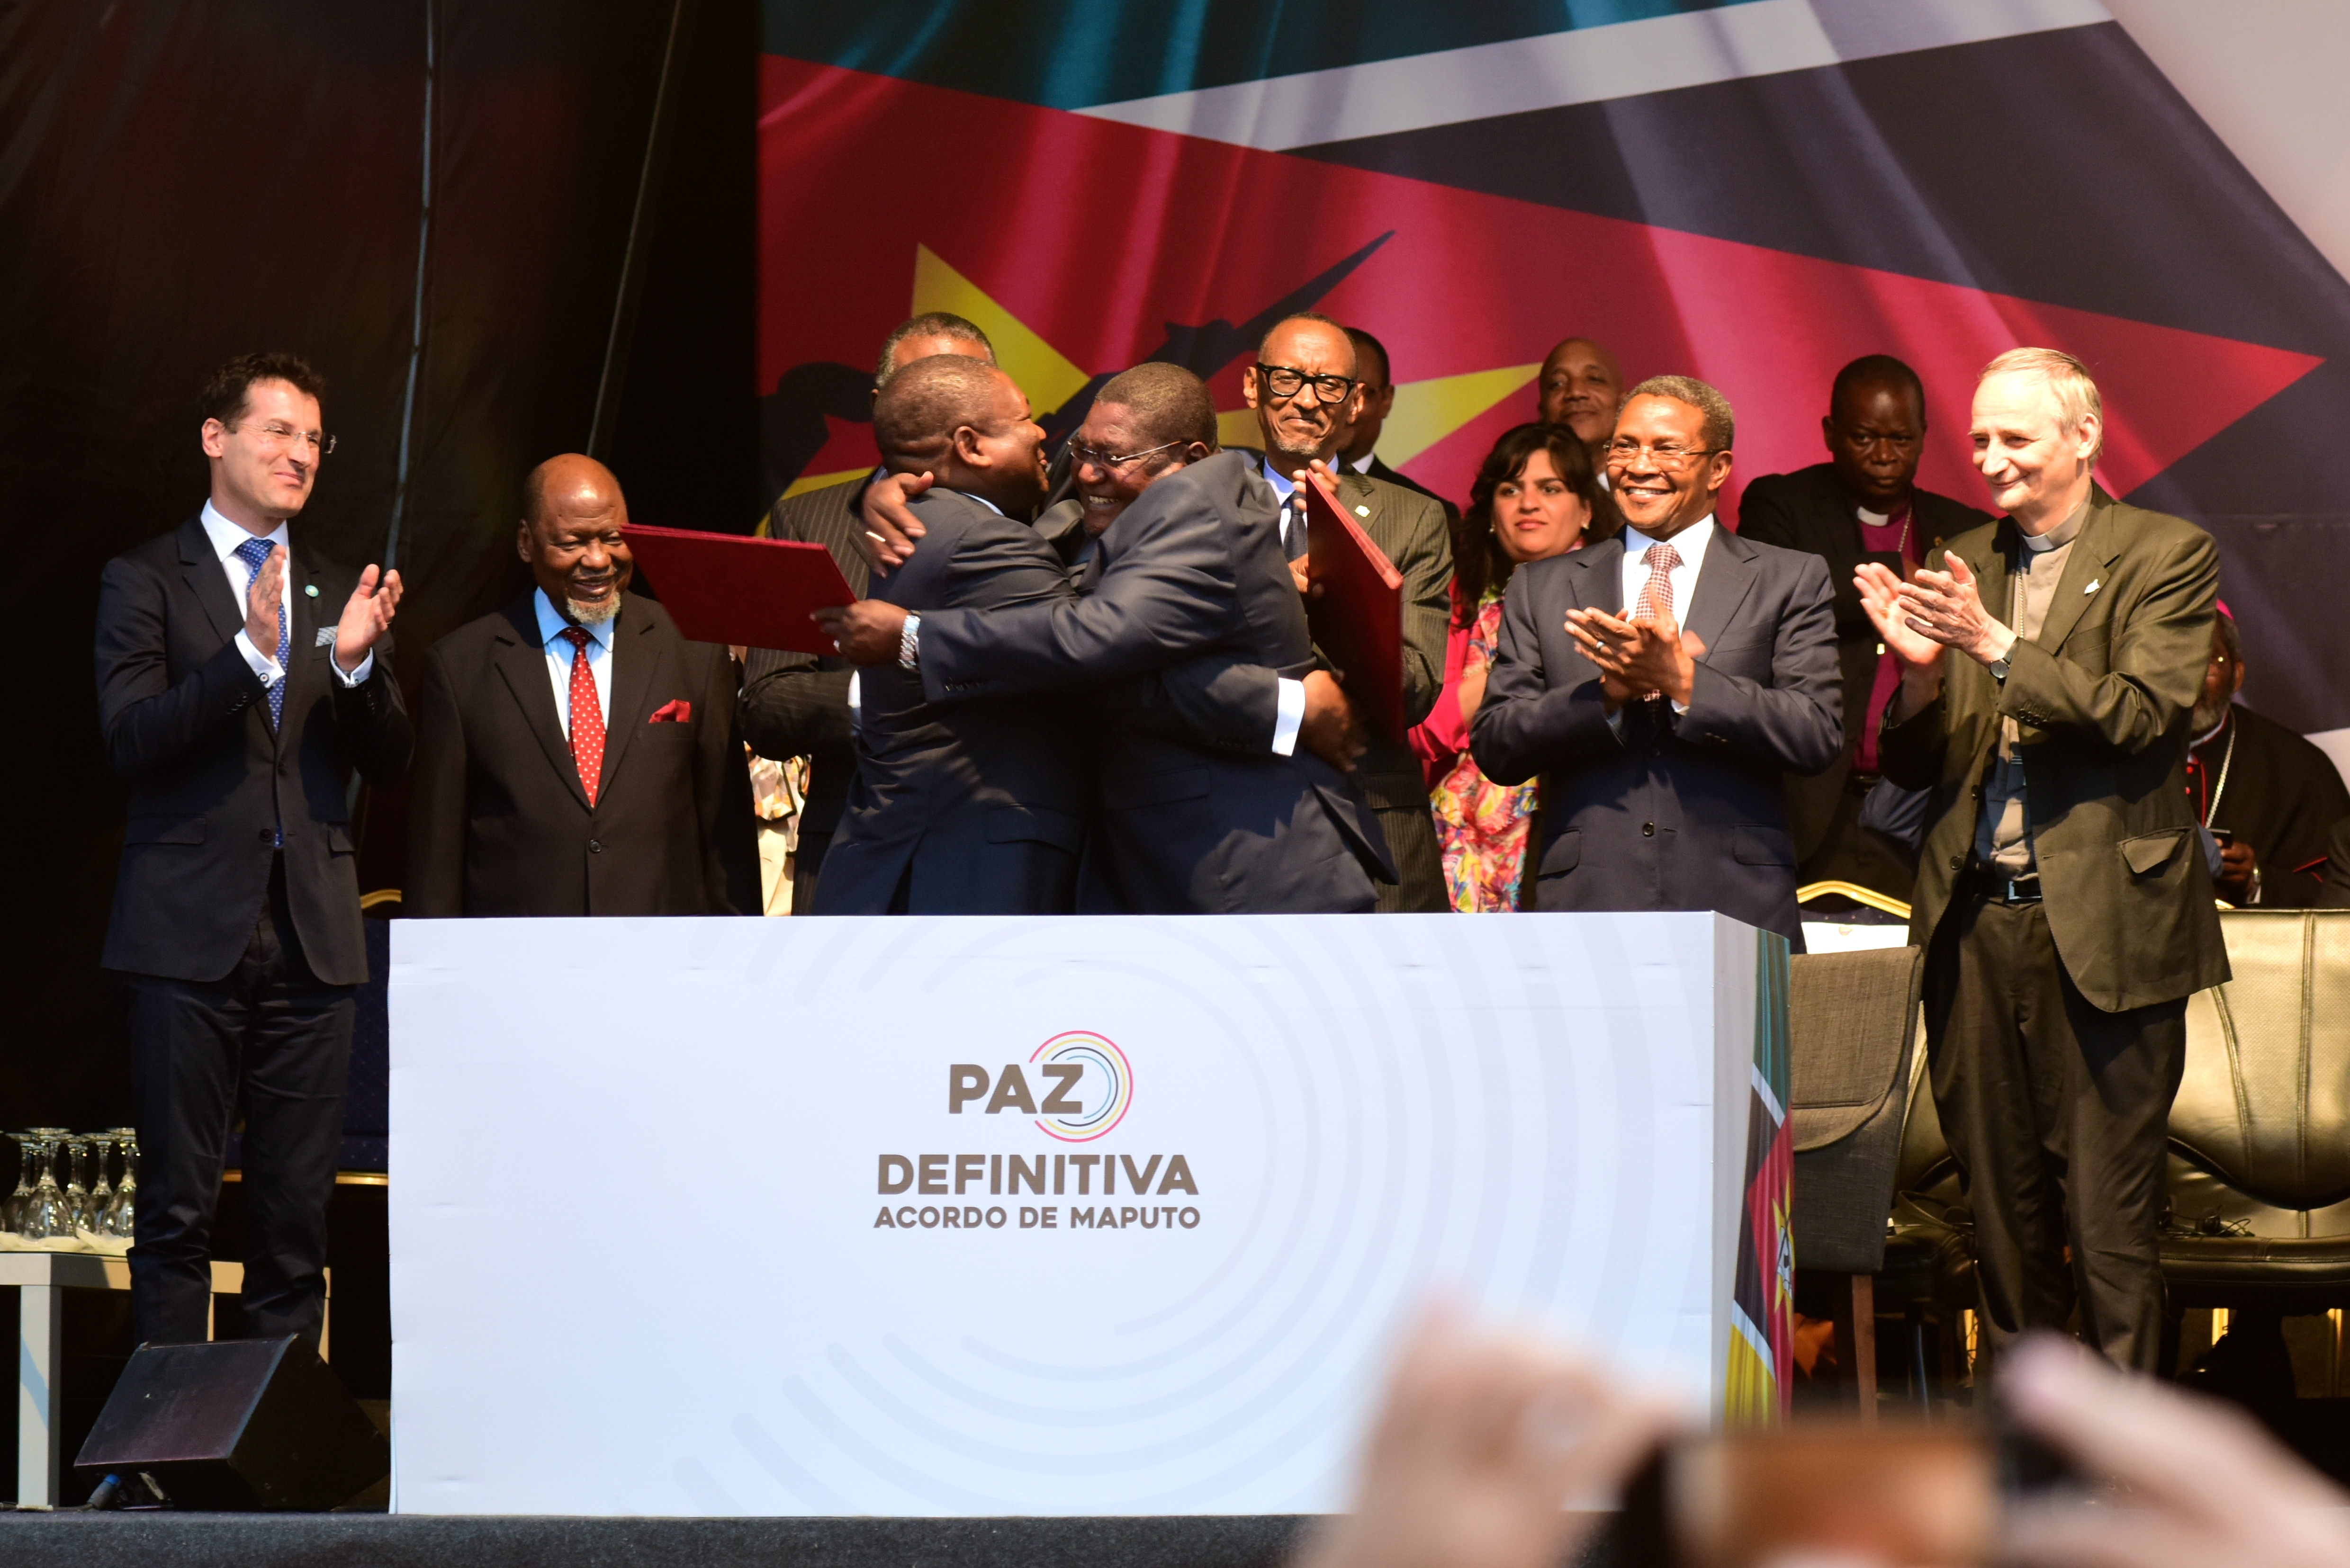 Mozambique's President Nyusi and the leader of the former rebel group Renamo (Ossufo Momade) embrace at the ceremony to mark the signing of the peace accord following decades of violence.